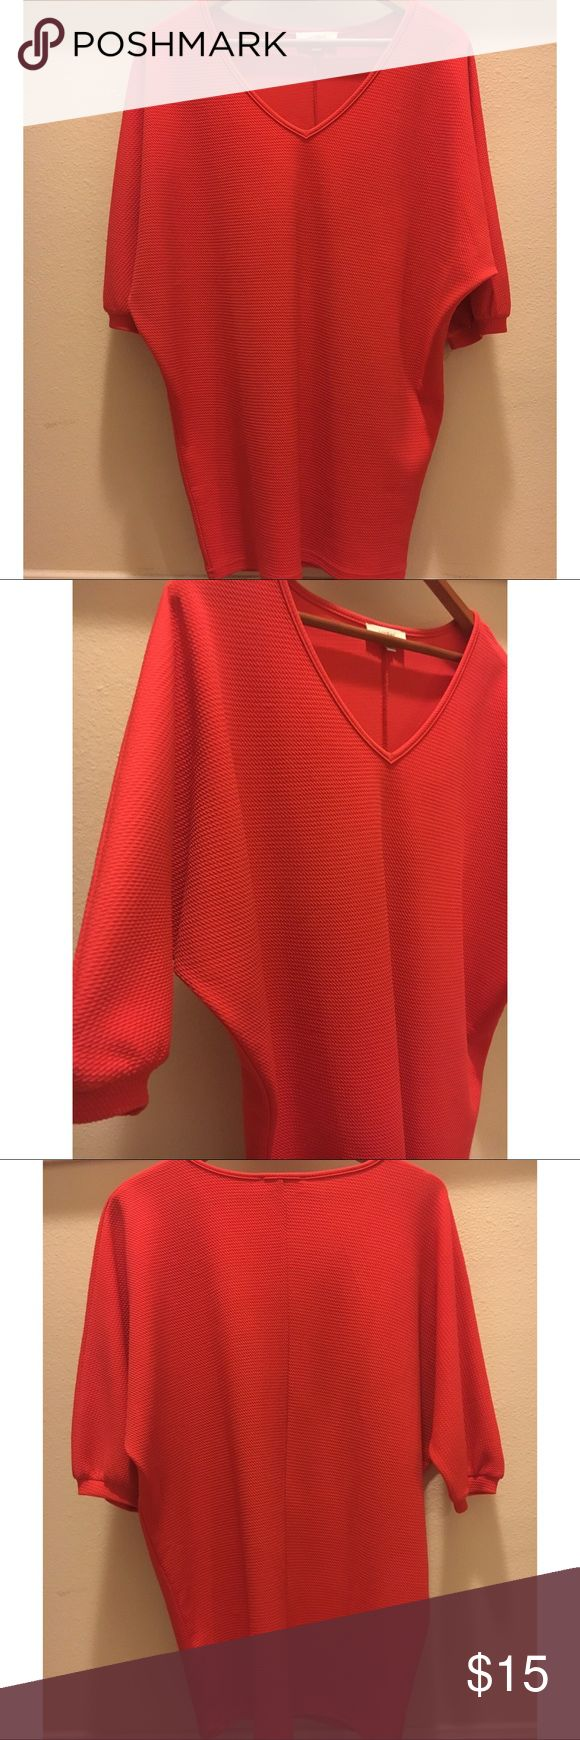 Bright red tunic blouse size small brand new Gorgeous bright red tunic length Blouse  3/4 length sleeves  Hits below waist  Blouson Sleeve style  V neck  Size small  Loose fit  Brand new  Cotton blend  By umgee USA Umgee Tops Blouses